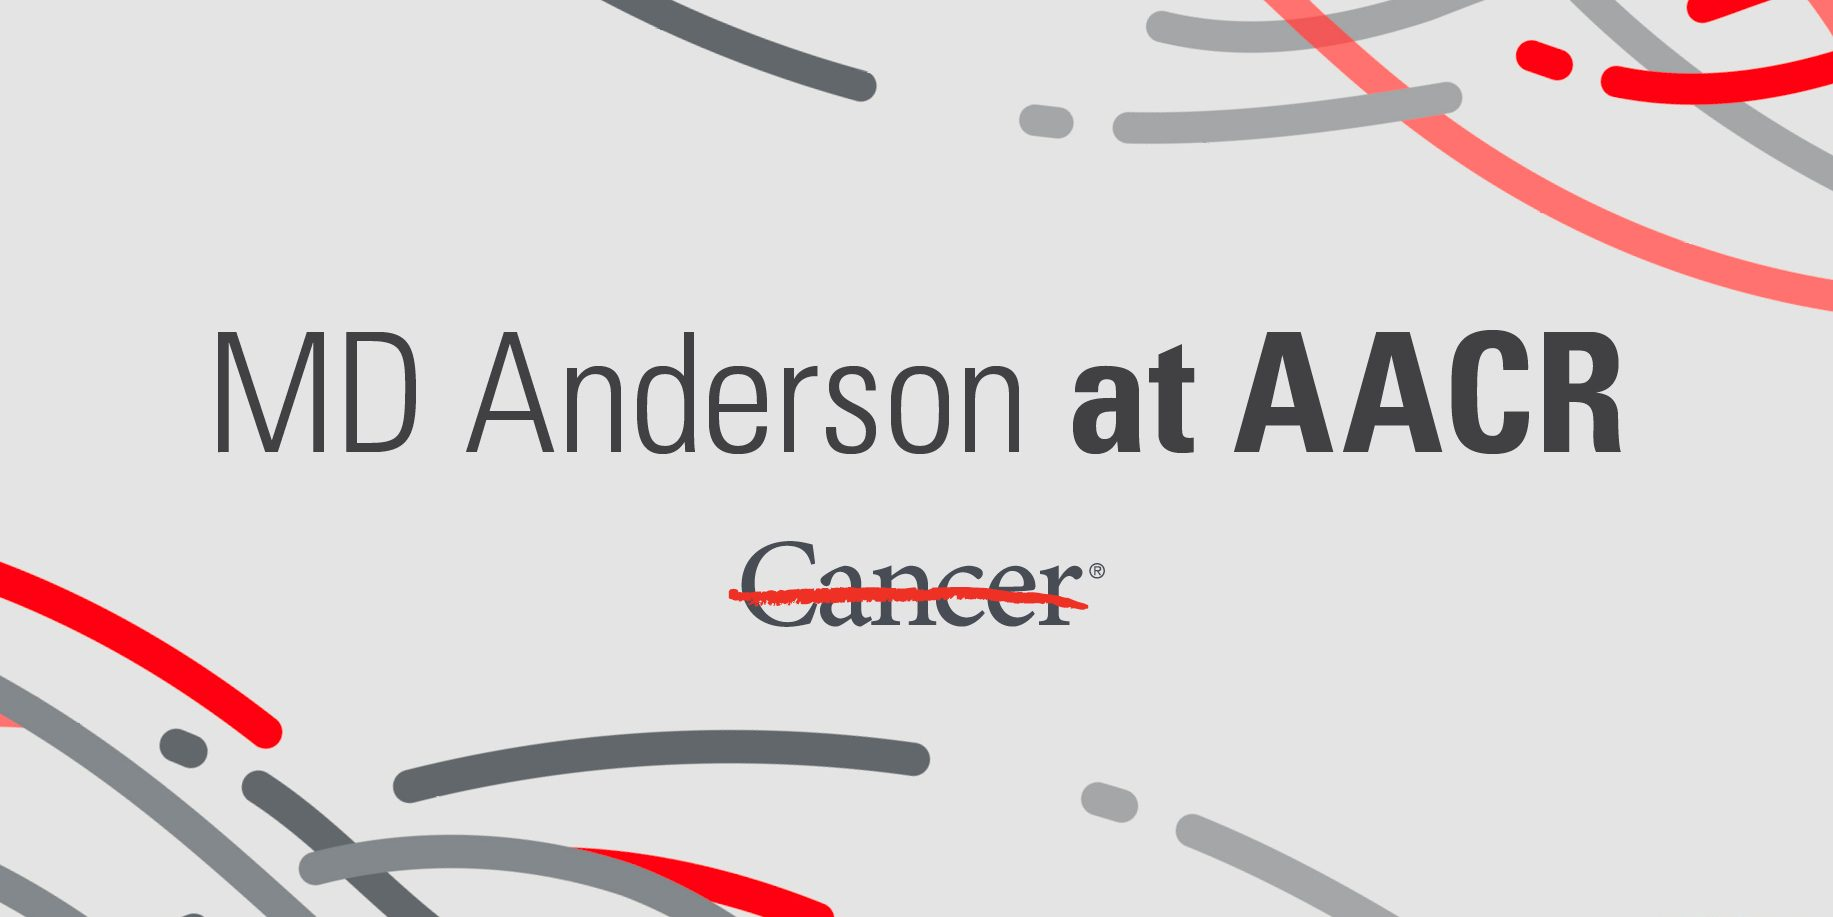 MD Anderson at AACR and cancer strikethrough graphic